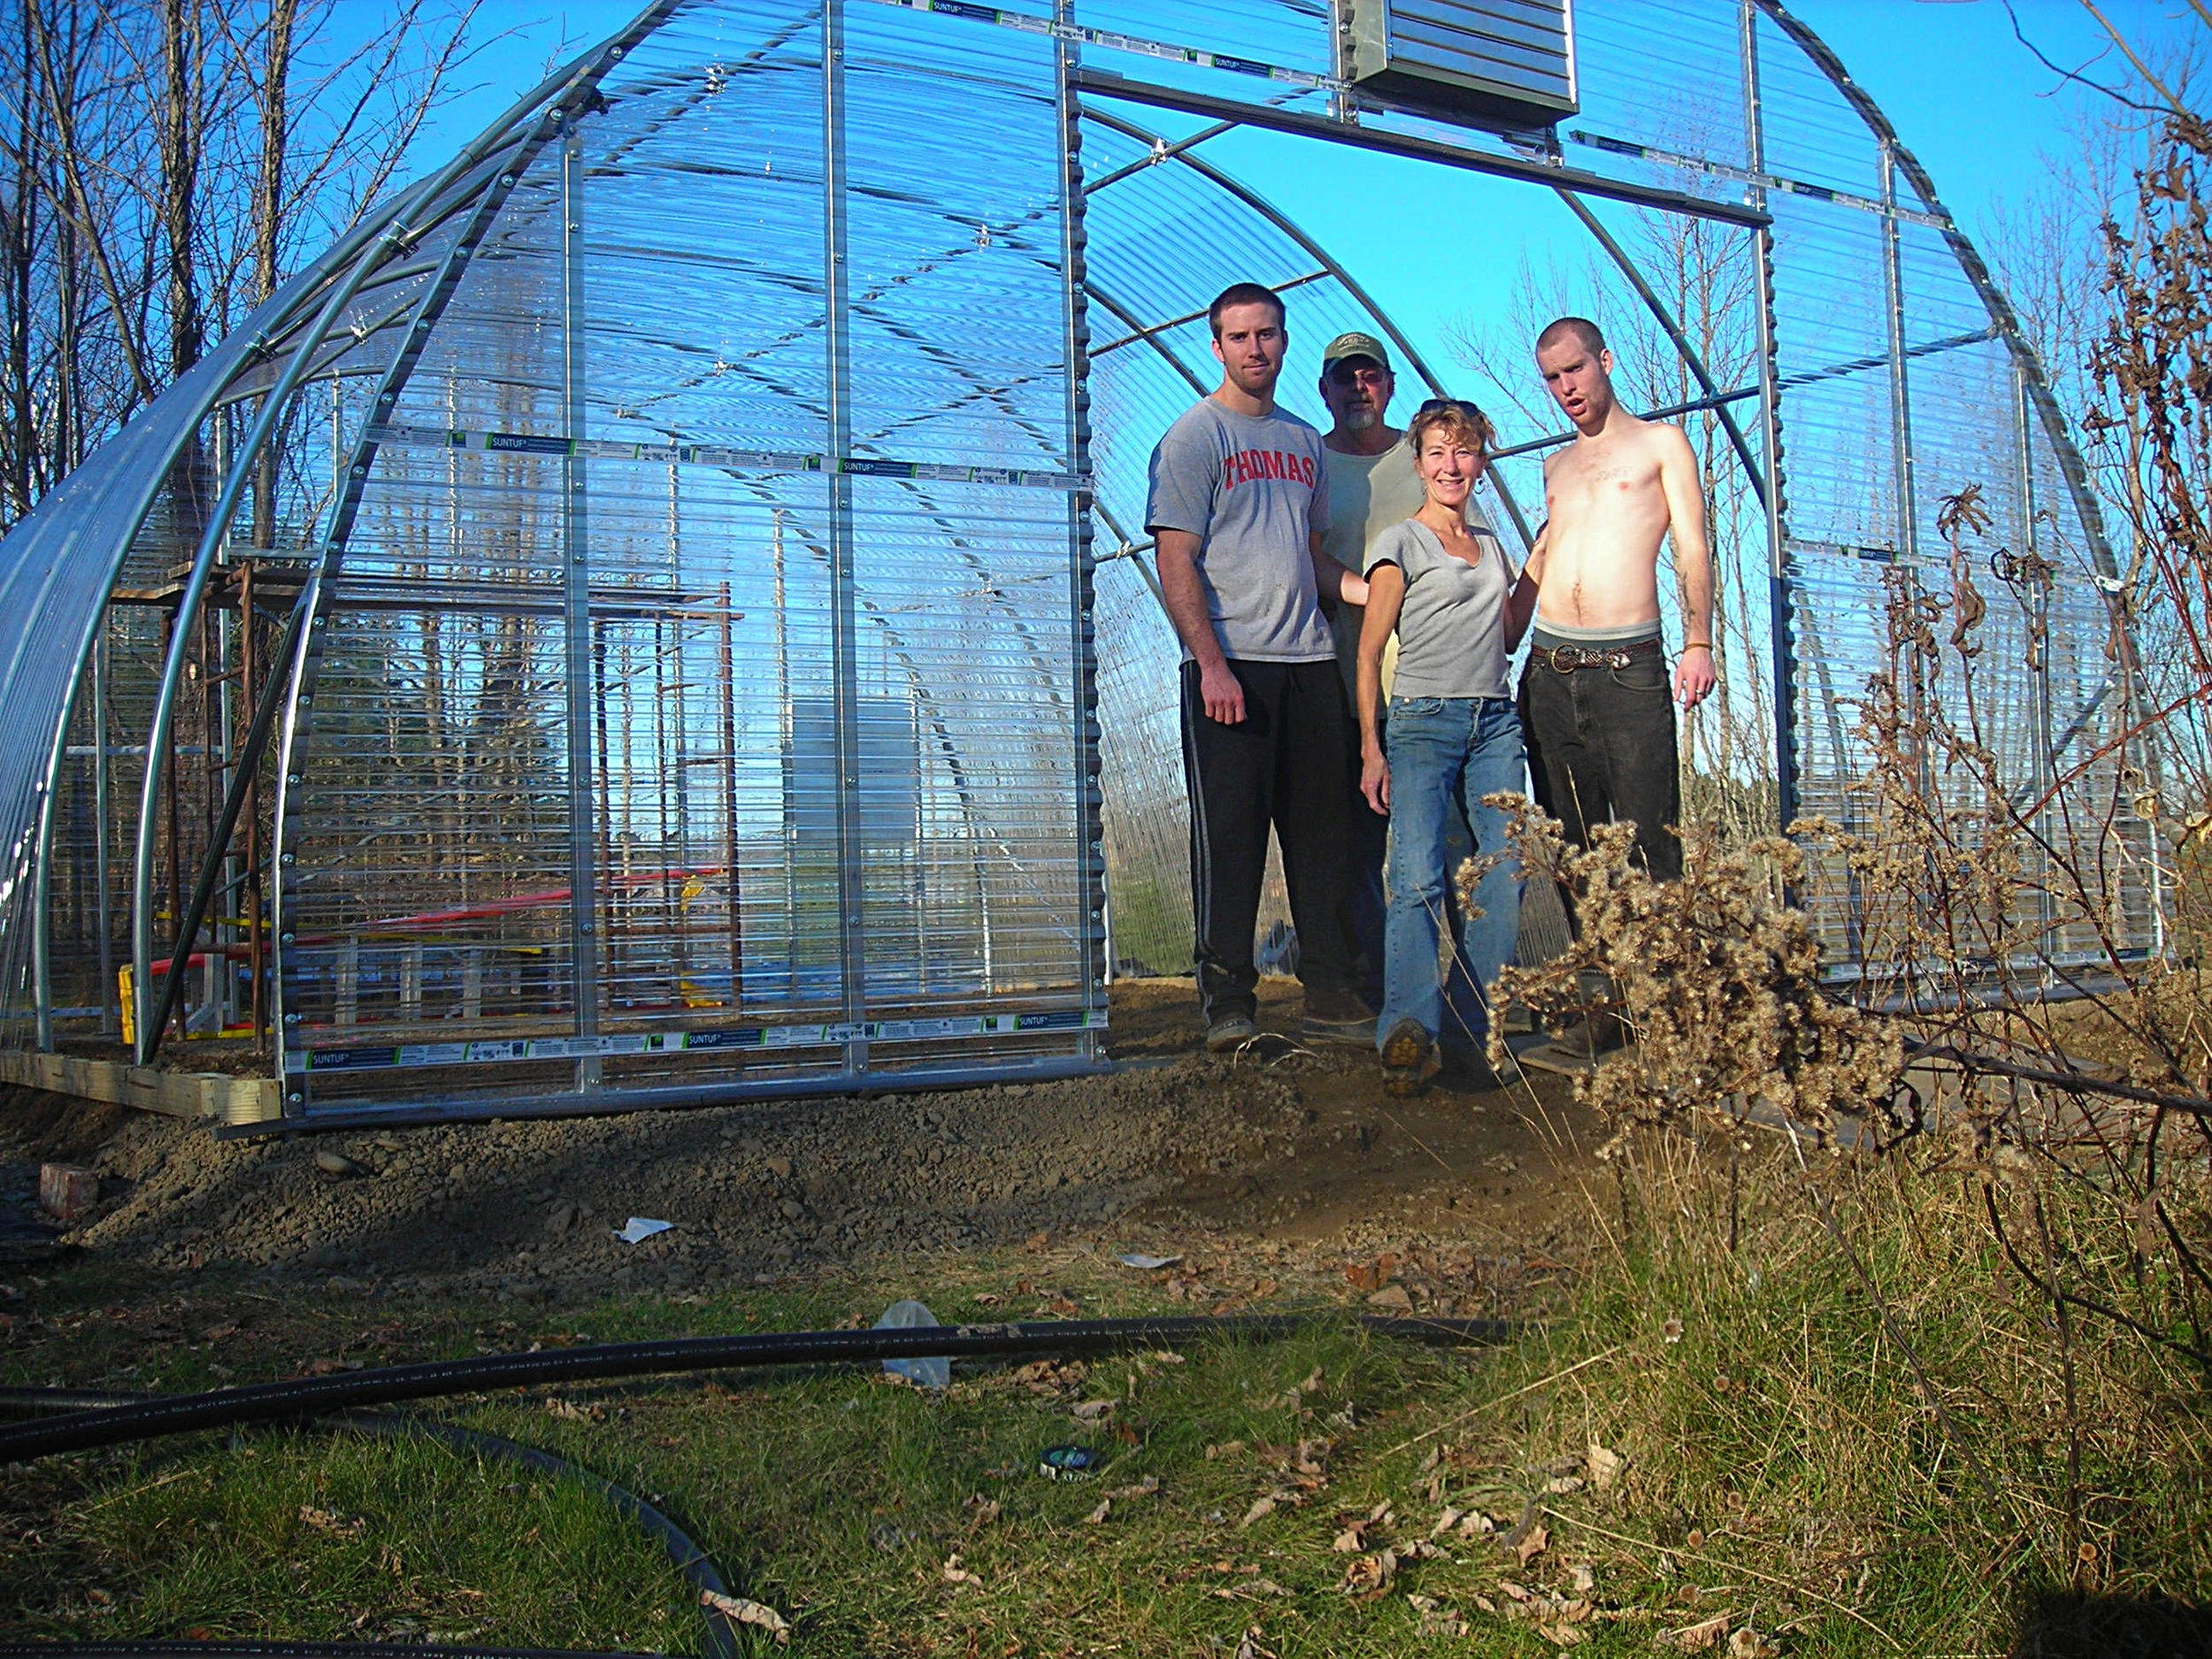 The crew! - The Fall of 2010 we built a new green house